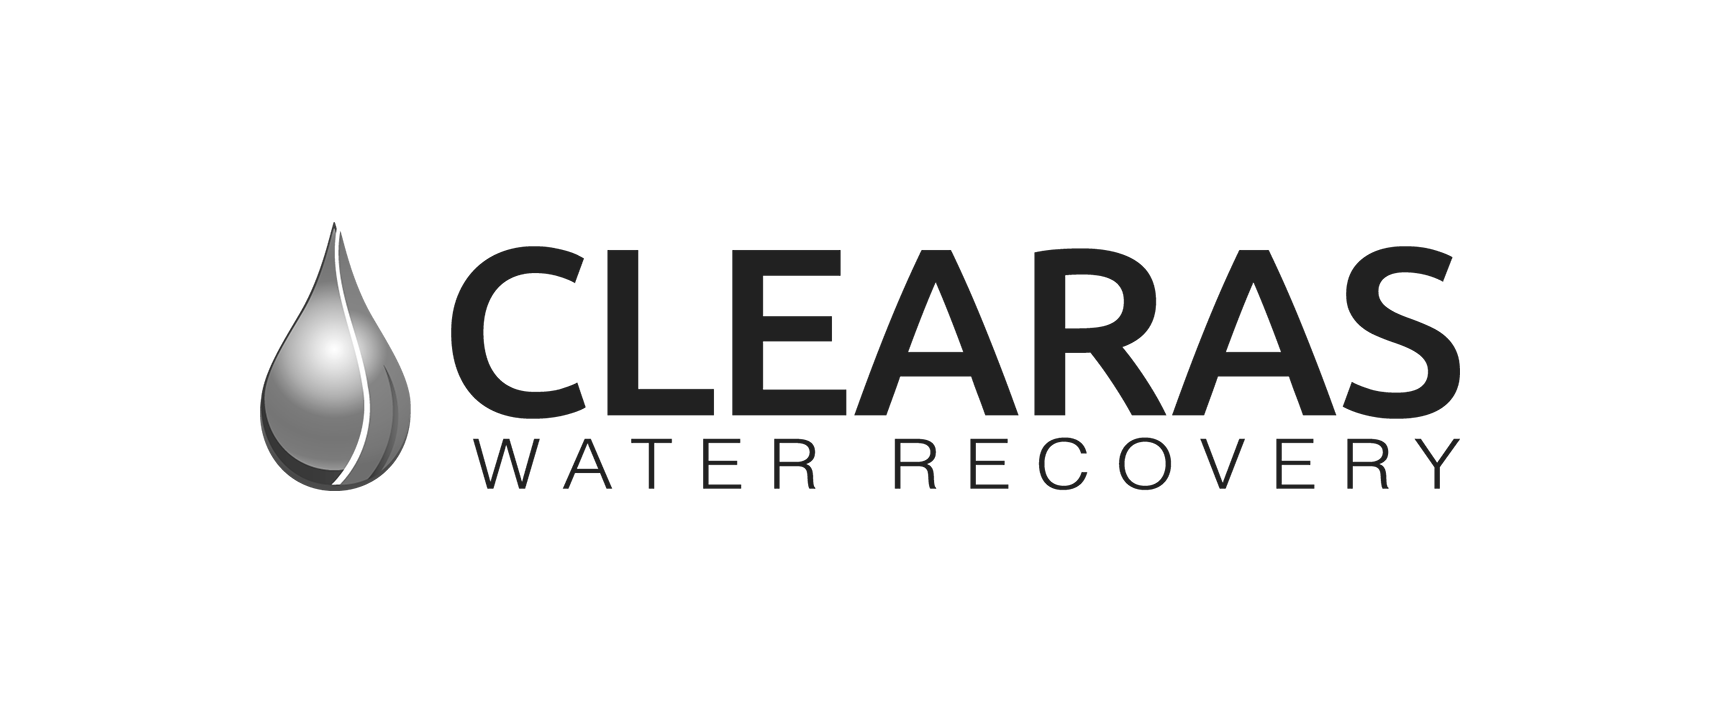 ClearasWaterLogo_FinalWord-2.png